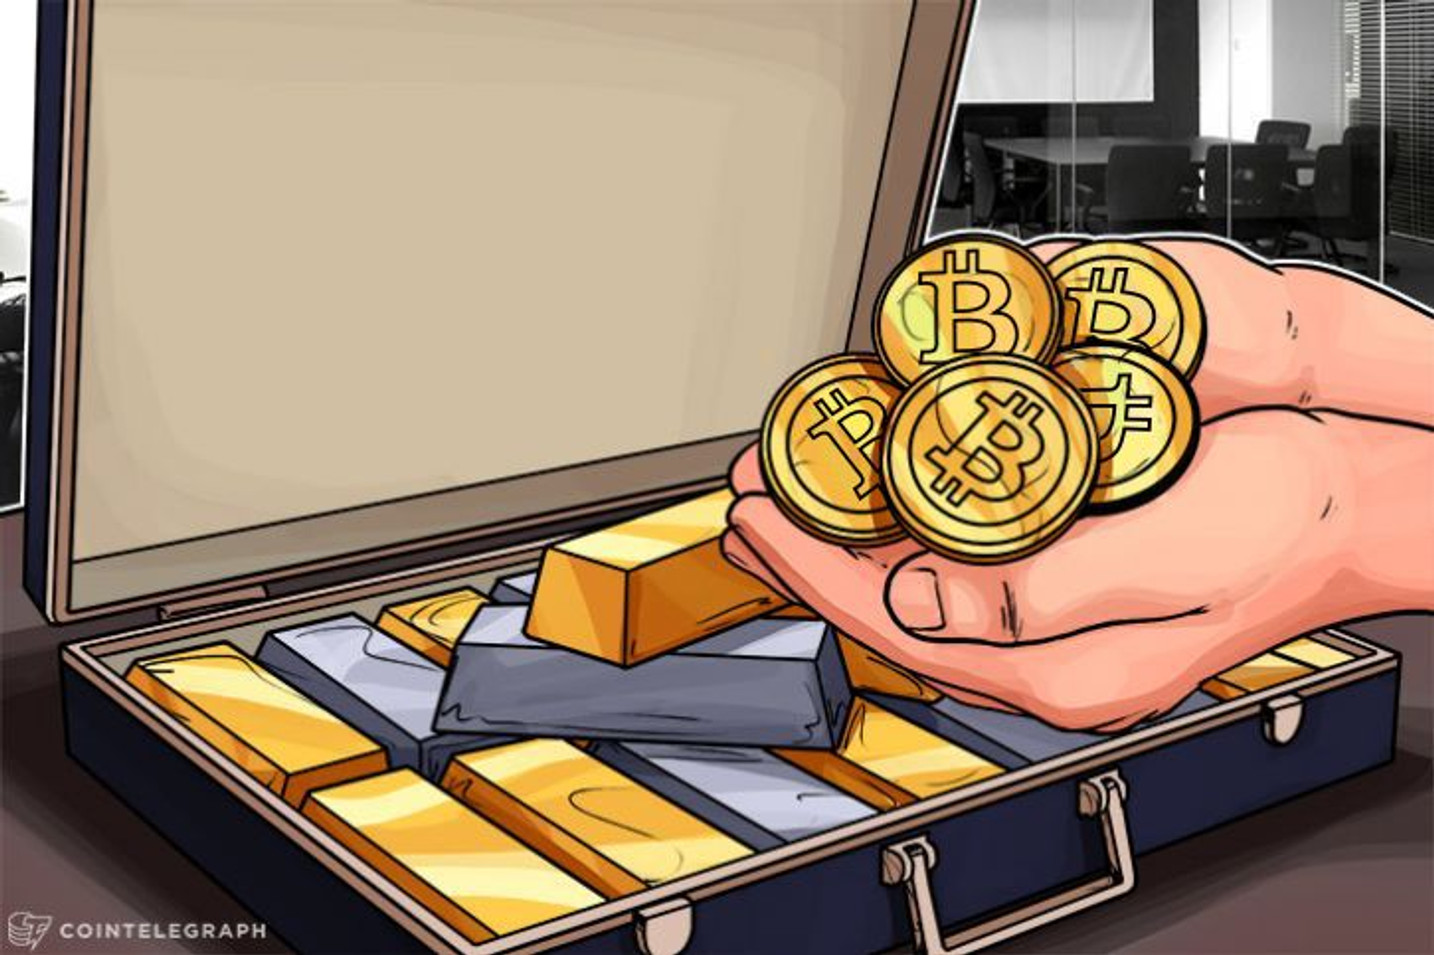 Distinguished London Gold Dealer Accepts Bitcoin for Payment